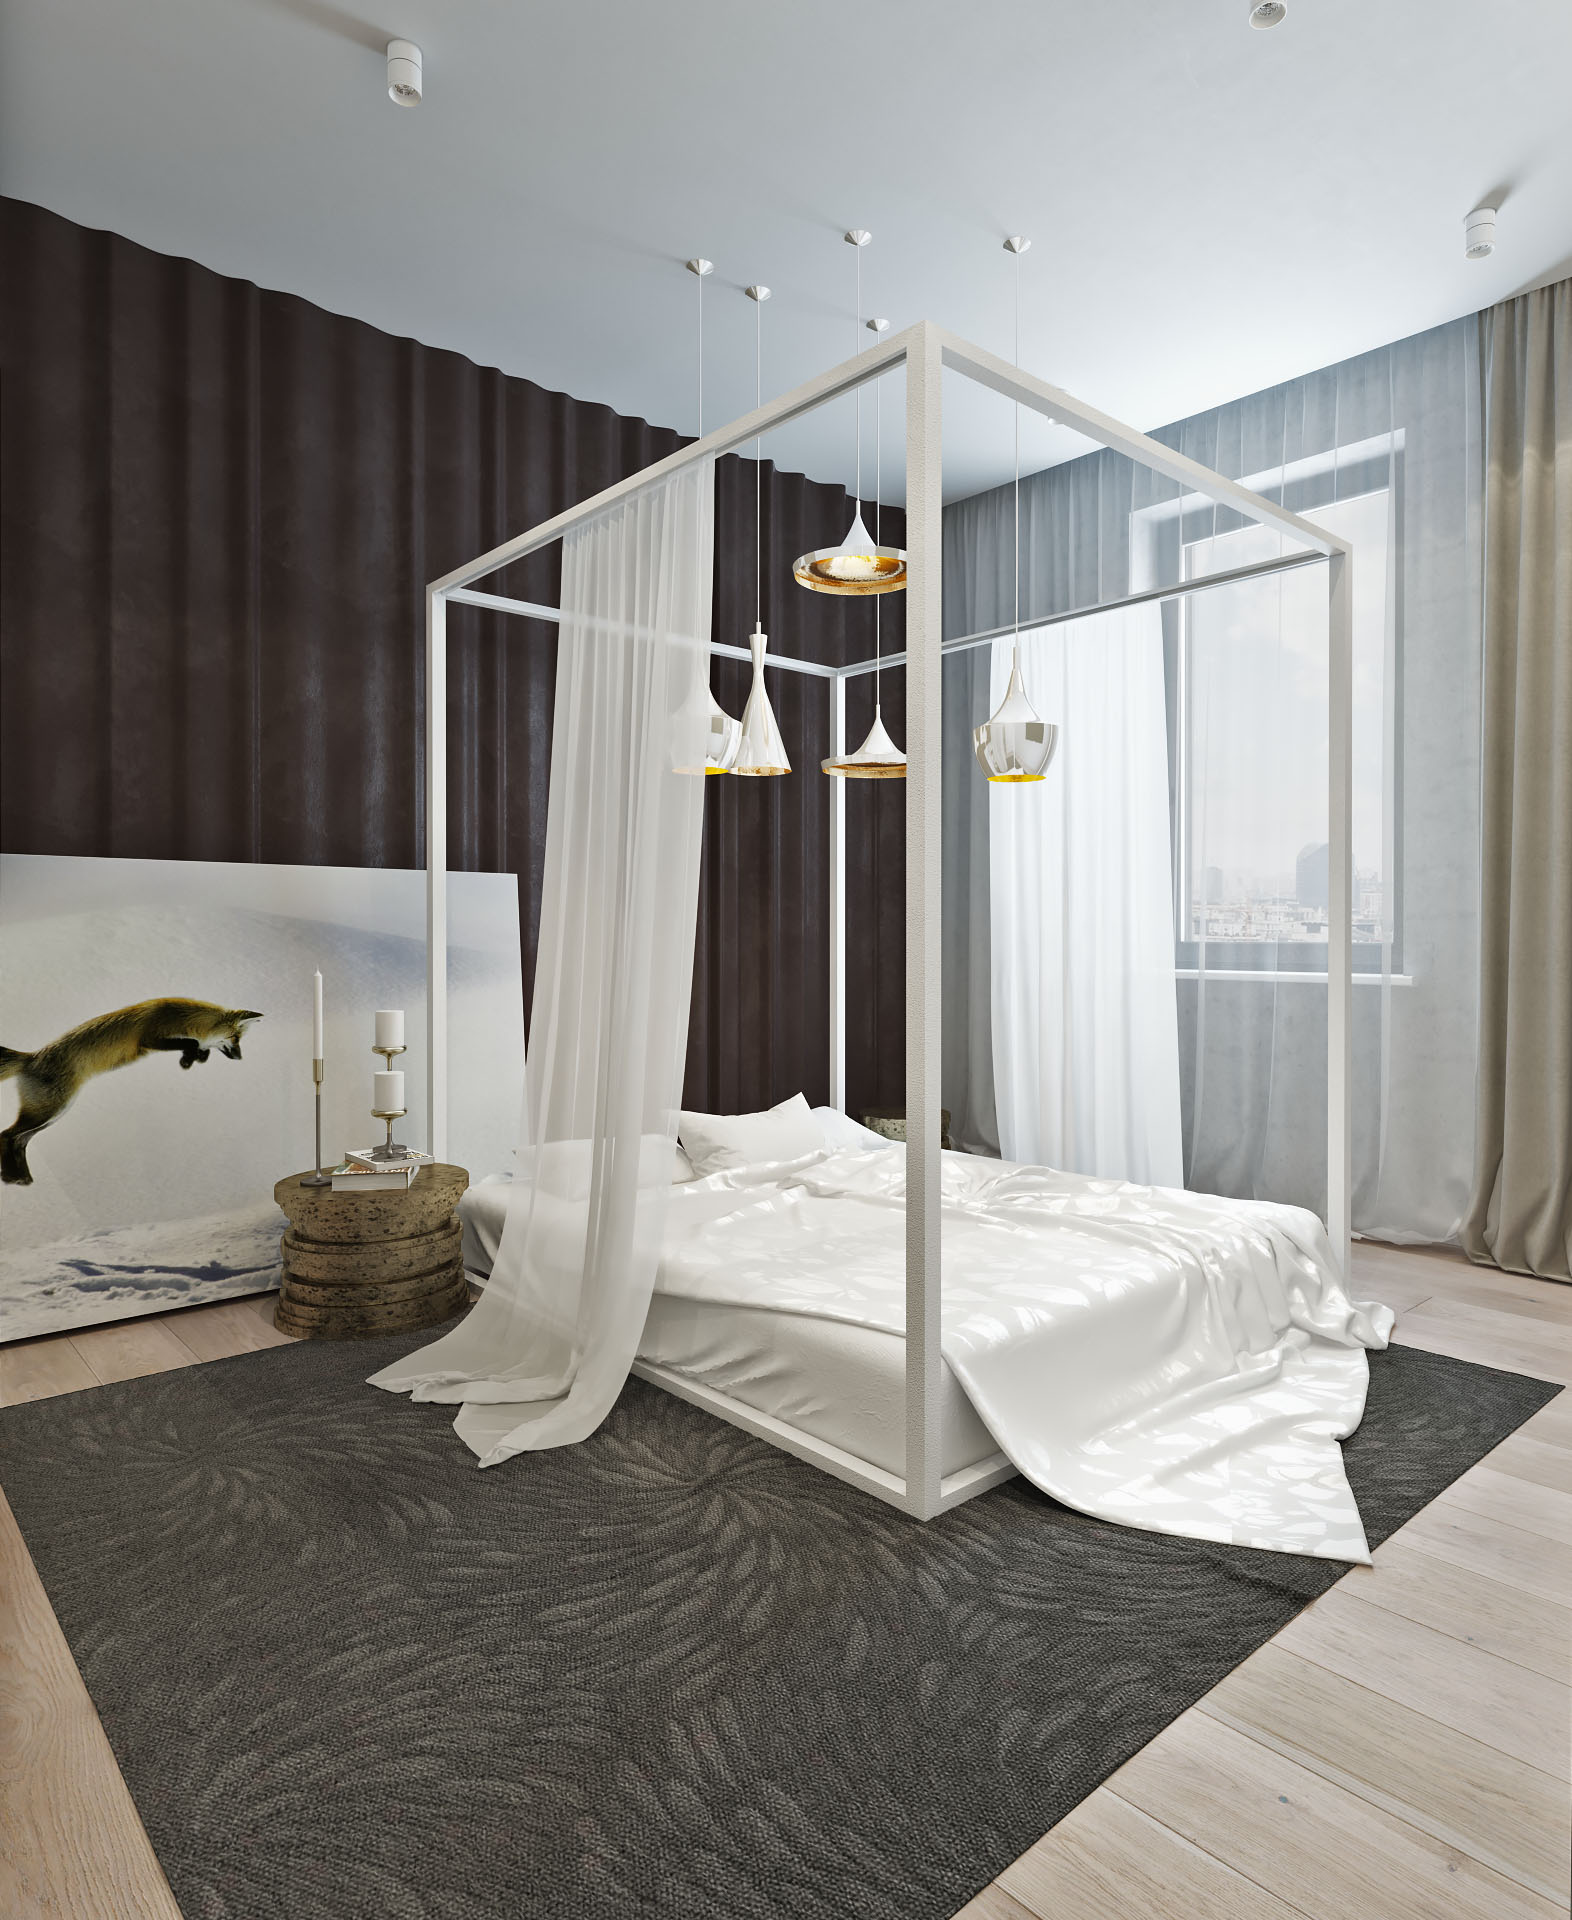 Modern canopy bed ideas - Like Architecture Interior Design Follow Us